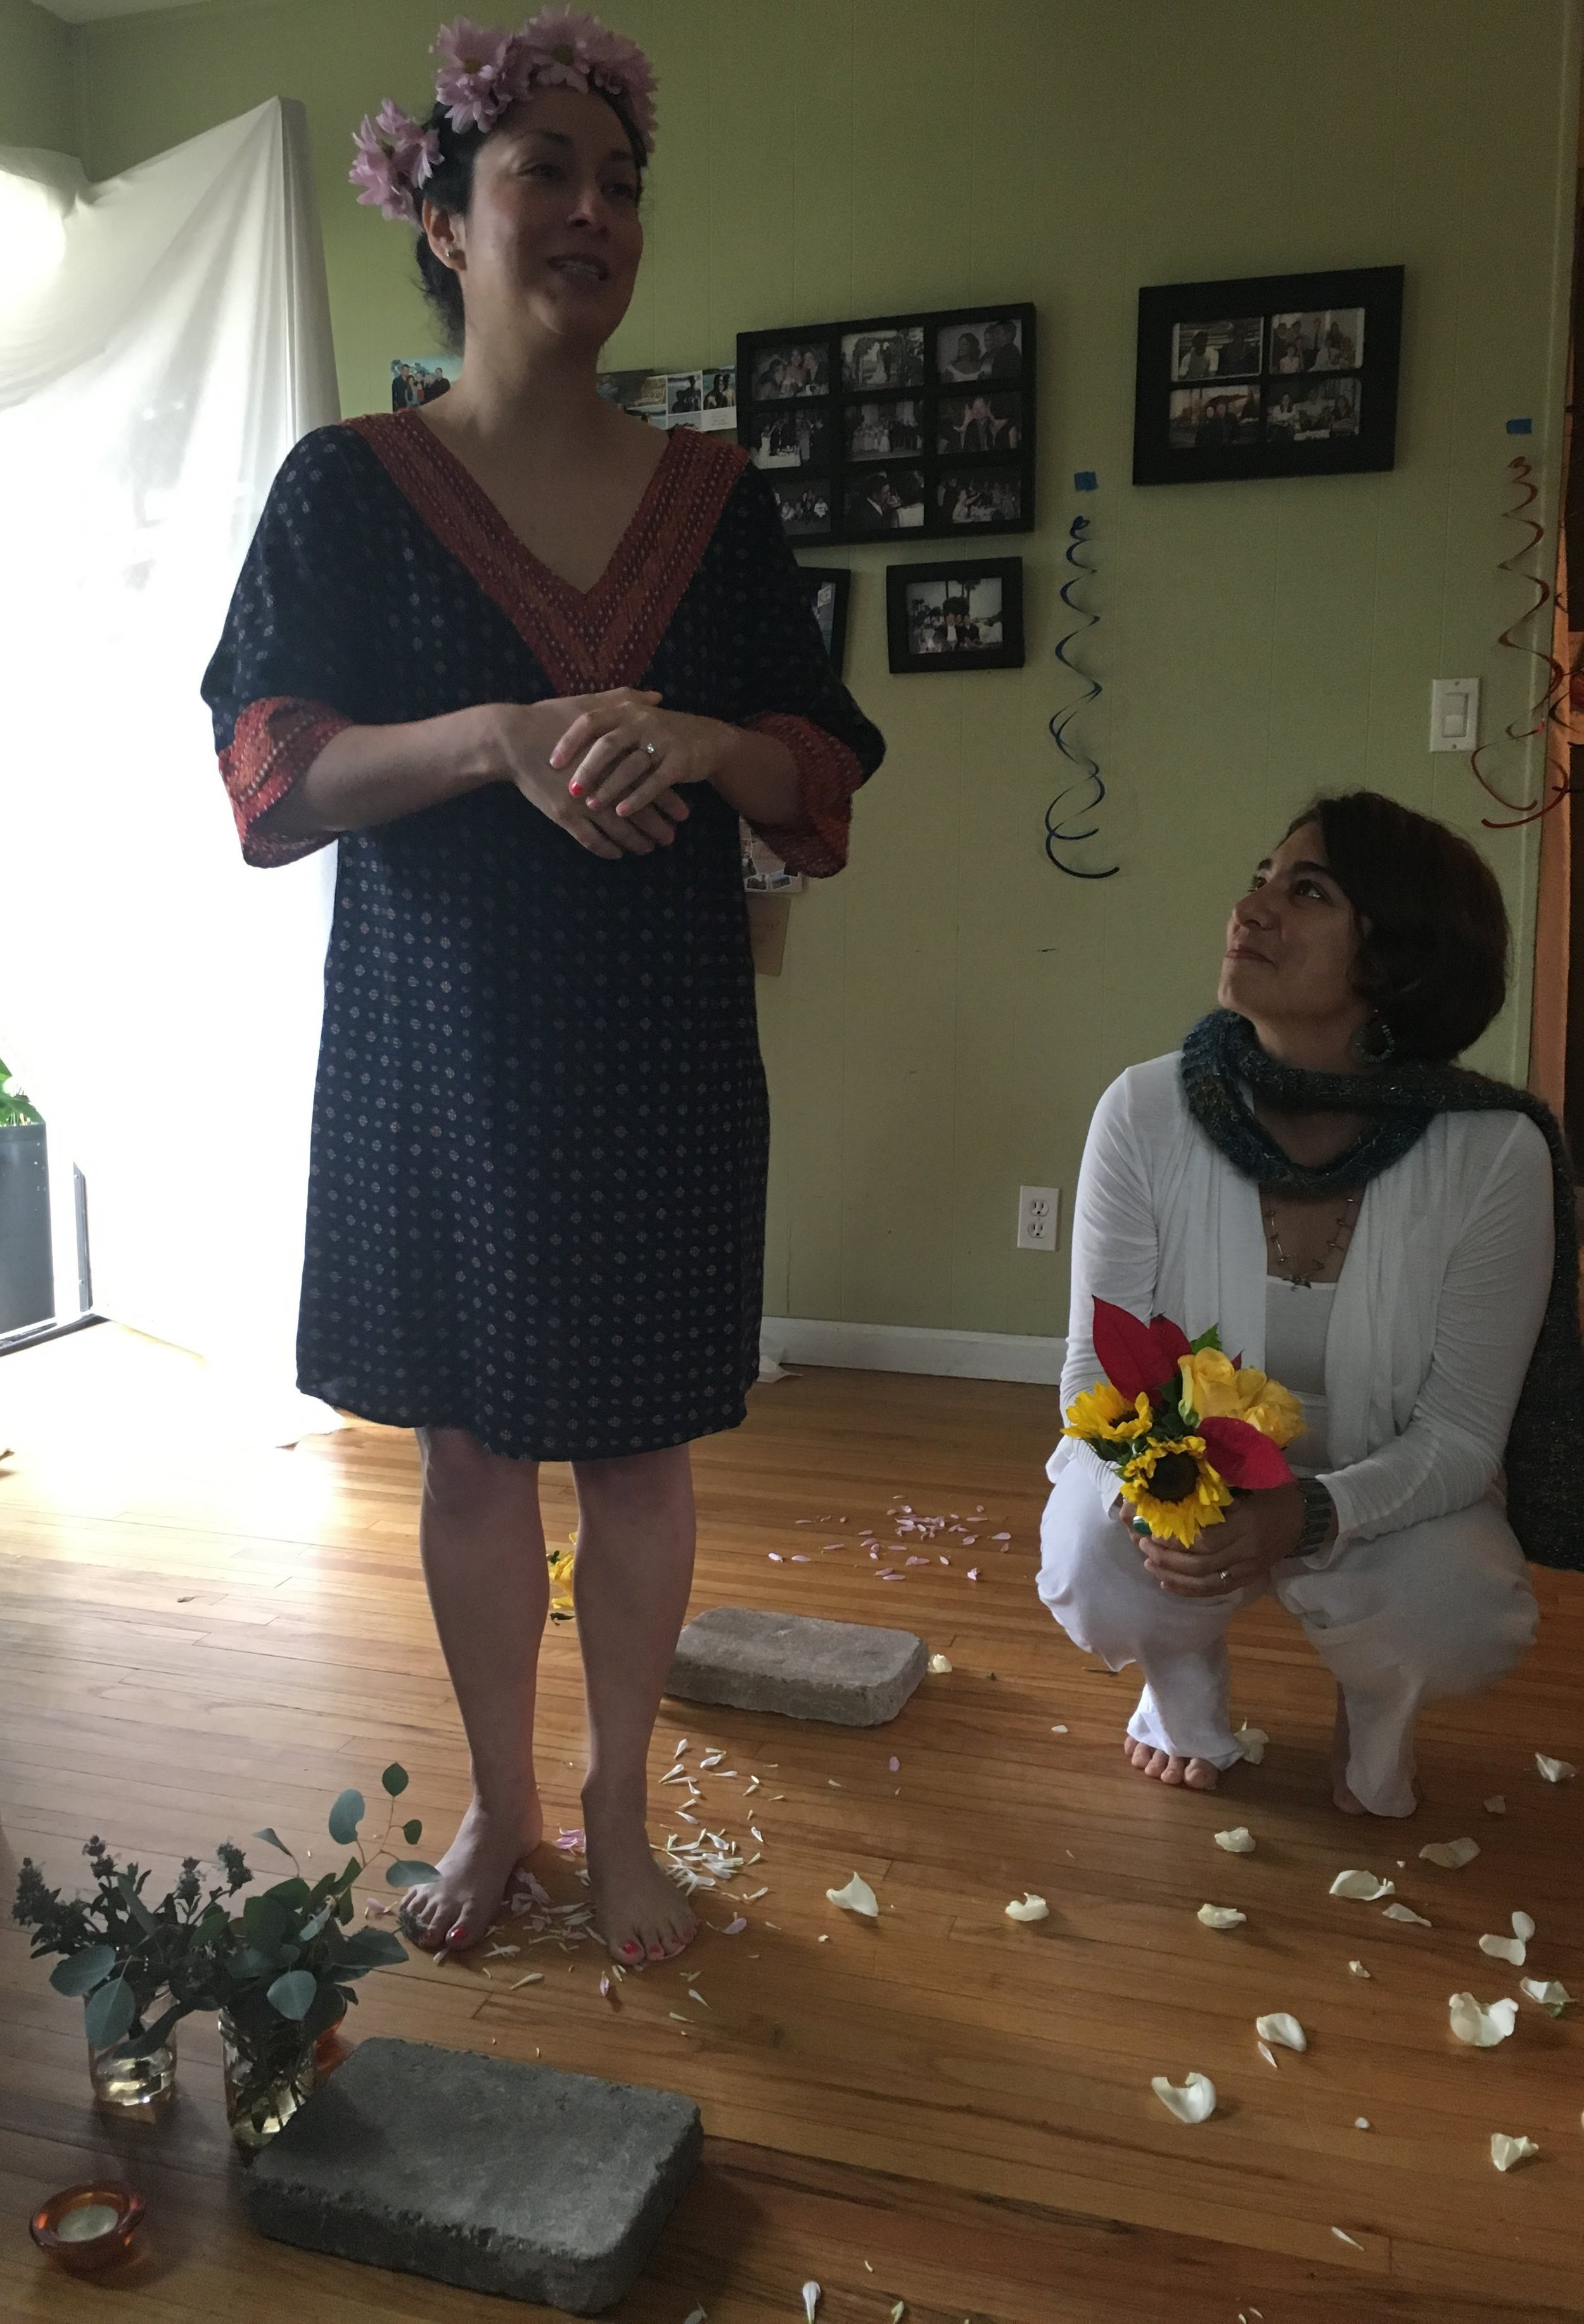 """Bridal Blessing - """"2018 was such a special year. My loving partner and I got a chance to exchange personal vows and make a lifelong commitment to each other in front of our """"tribe."""" As a special gift from my sister, I had the chance to preface my wedding day with a custom blessing circle alongside all the strong women in my family. Magdalena led us through a journey of life as specially connected women, openly celebrating one milestone (my milestone), together. It was the best gift I could have received. Better than any shower anyone could have thrown. Magdalena is a powerful facilitator of meaningful connection. She is creative and giving of her unique talent to get you to experience the energy around you. I am so grateful to have had that special moment with her and my family."""" - Victoria"""